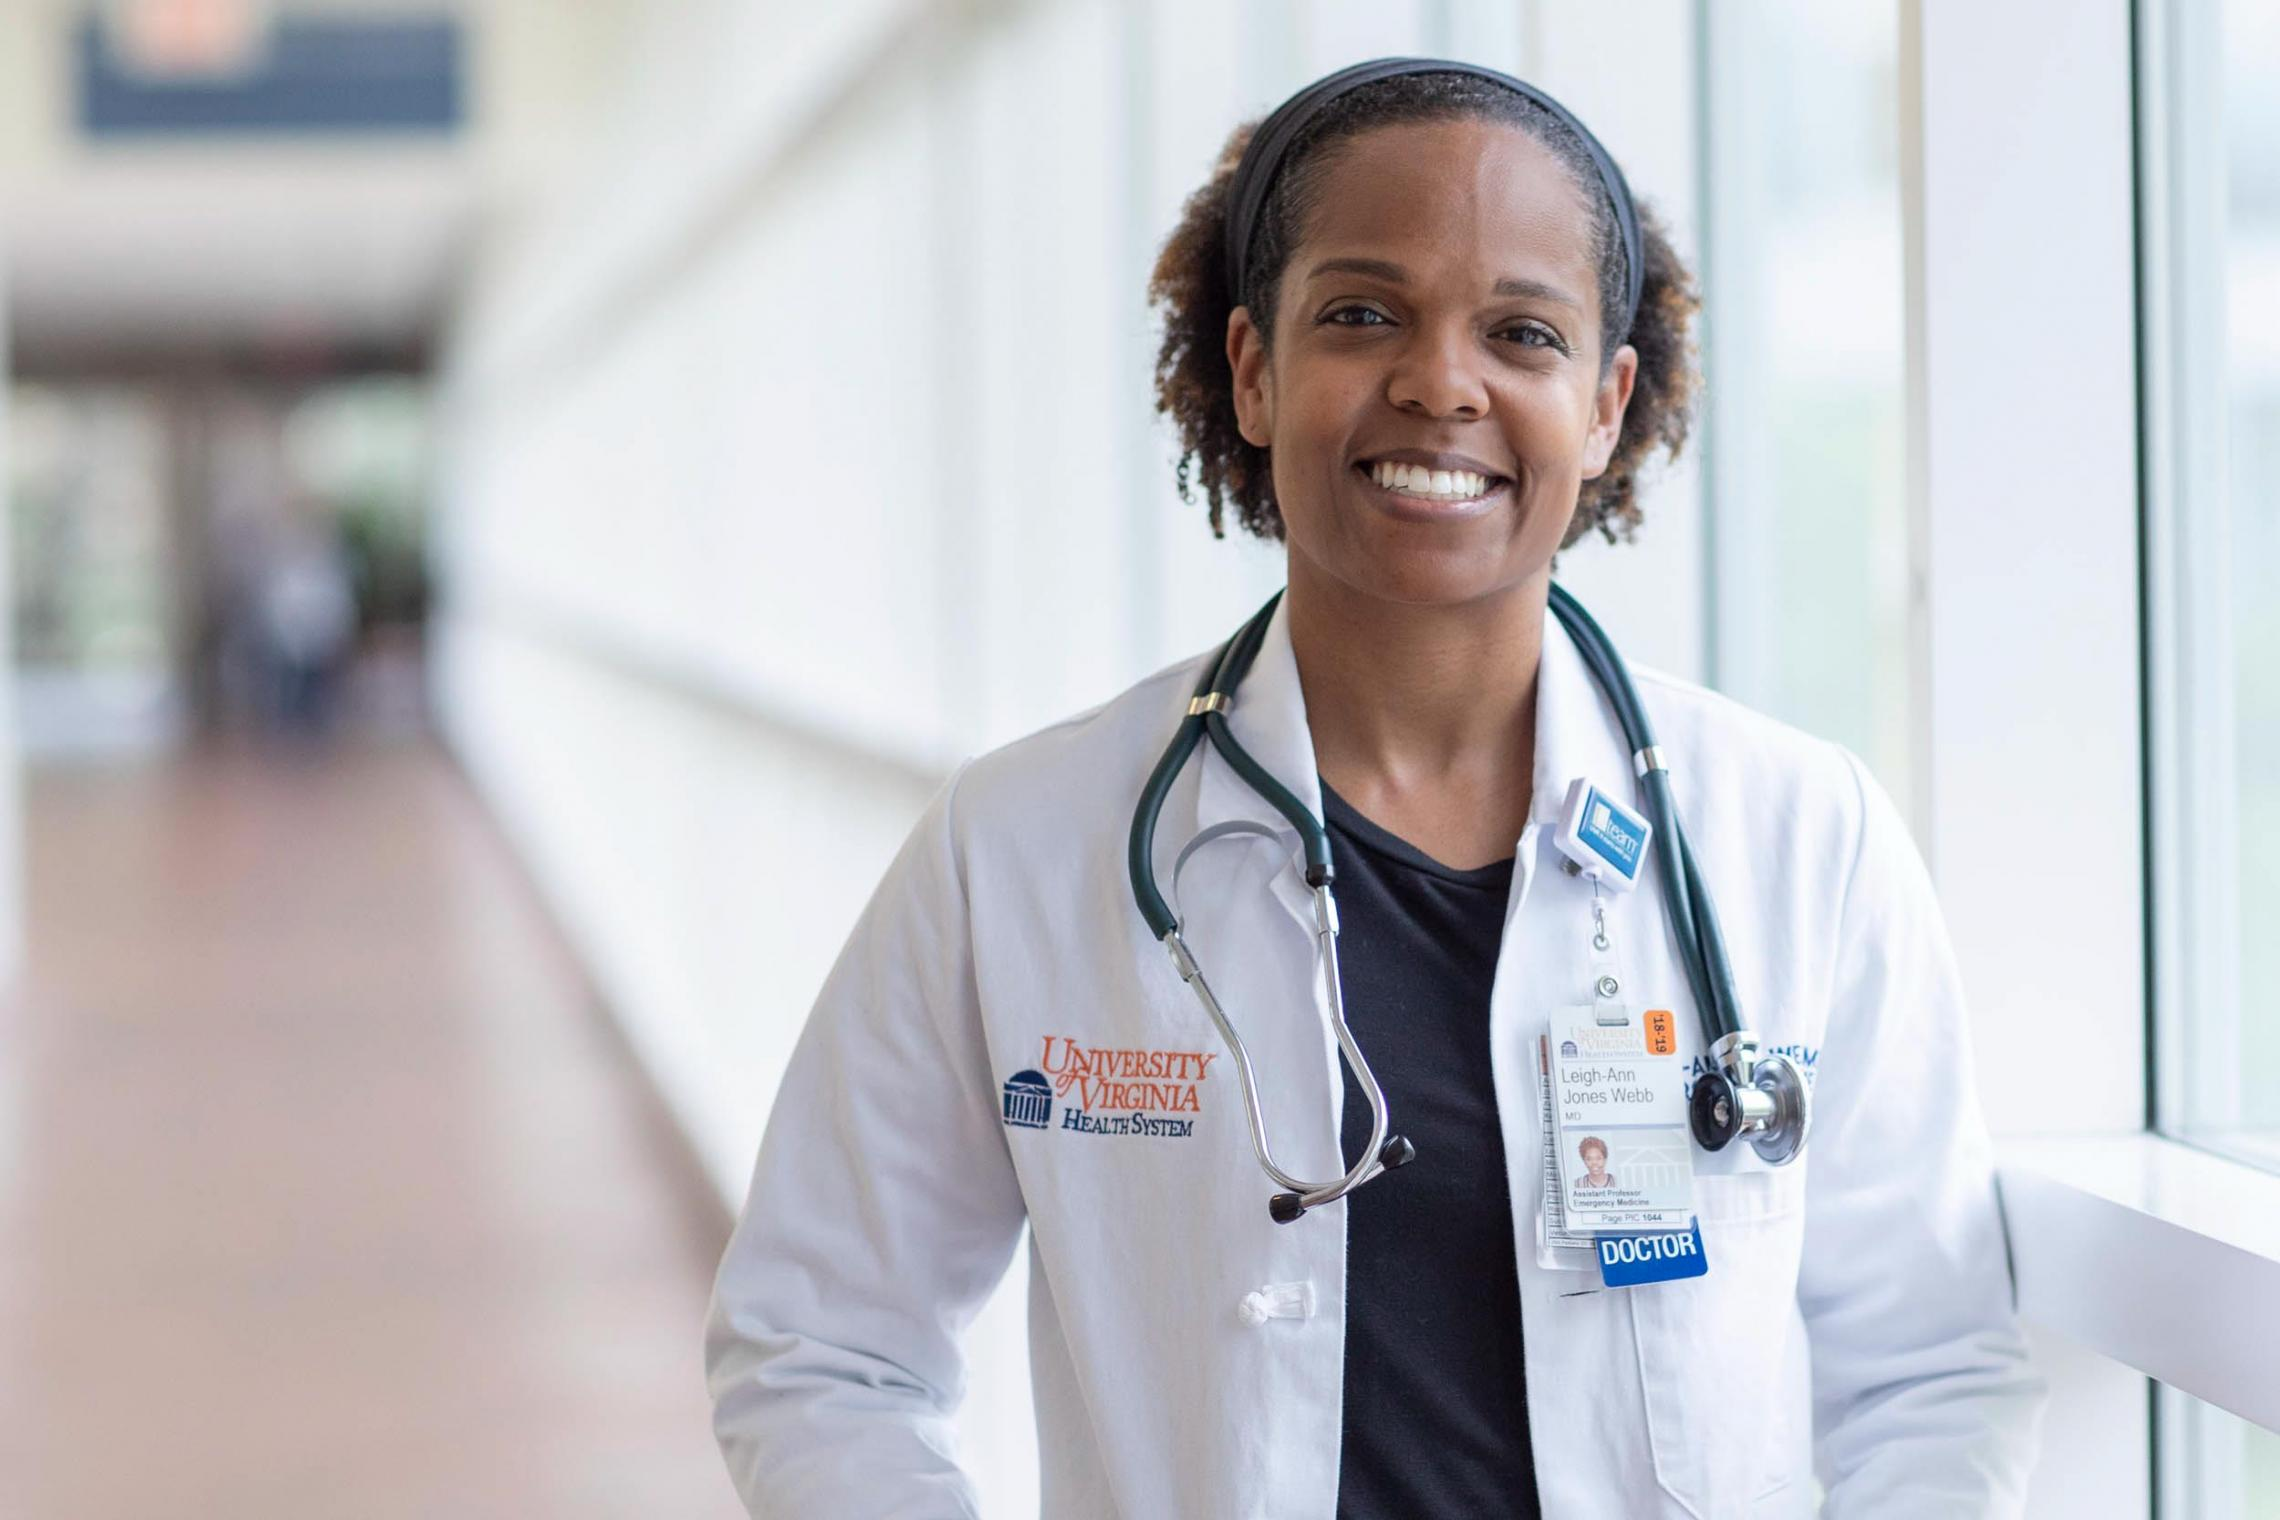 Dr. Leigh-Ann Webb met her husband, Cameron (also a doctor), when they were UVA first-year students. (Photo by Sanjay Suchak, University Communications)